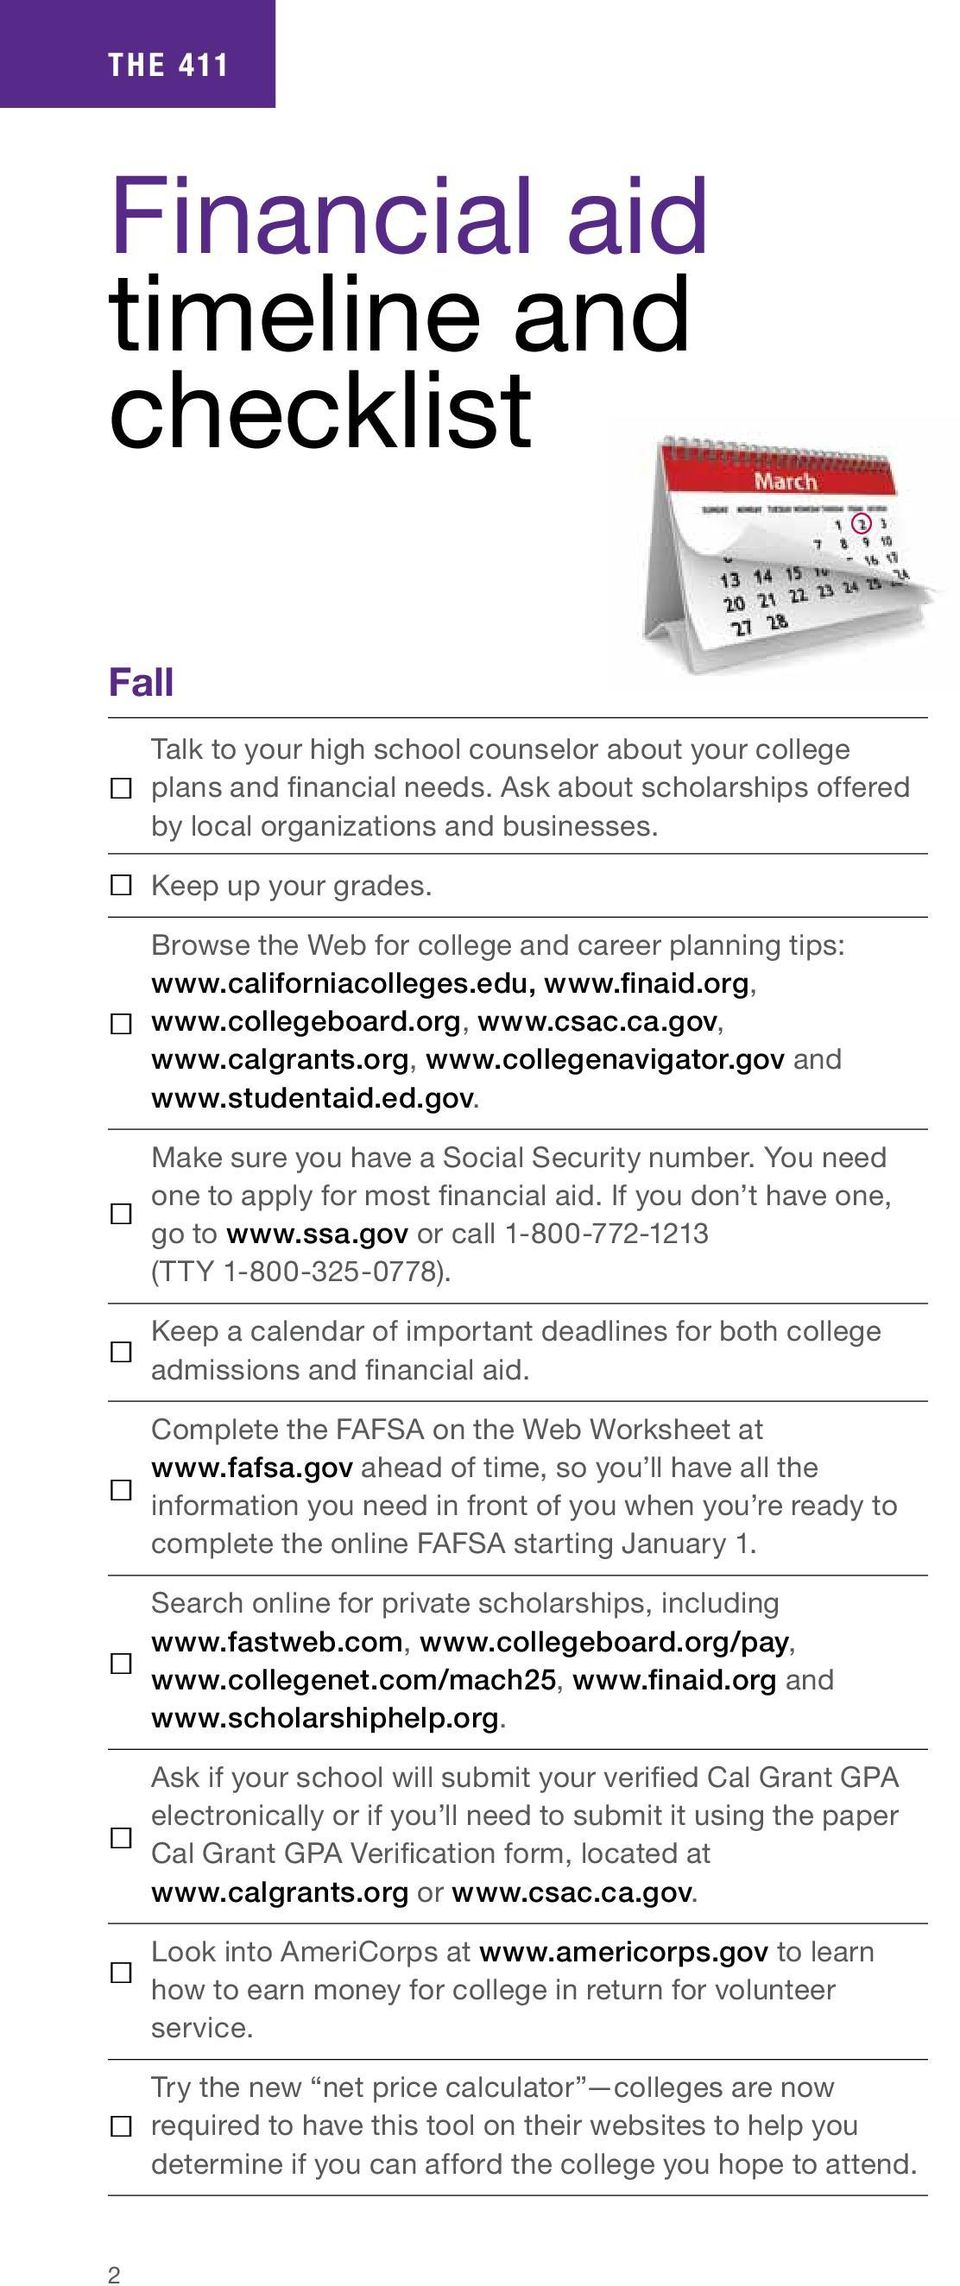 gov and www.studentaid.ed.gov. Make sure you have a Social Security number. You need one to apply for most financial aid. If you don t have one, go to www.ssa.